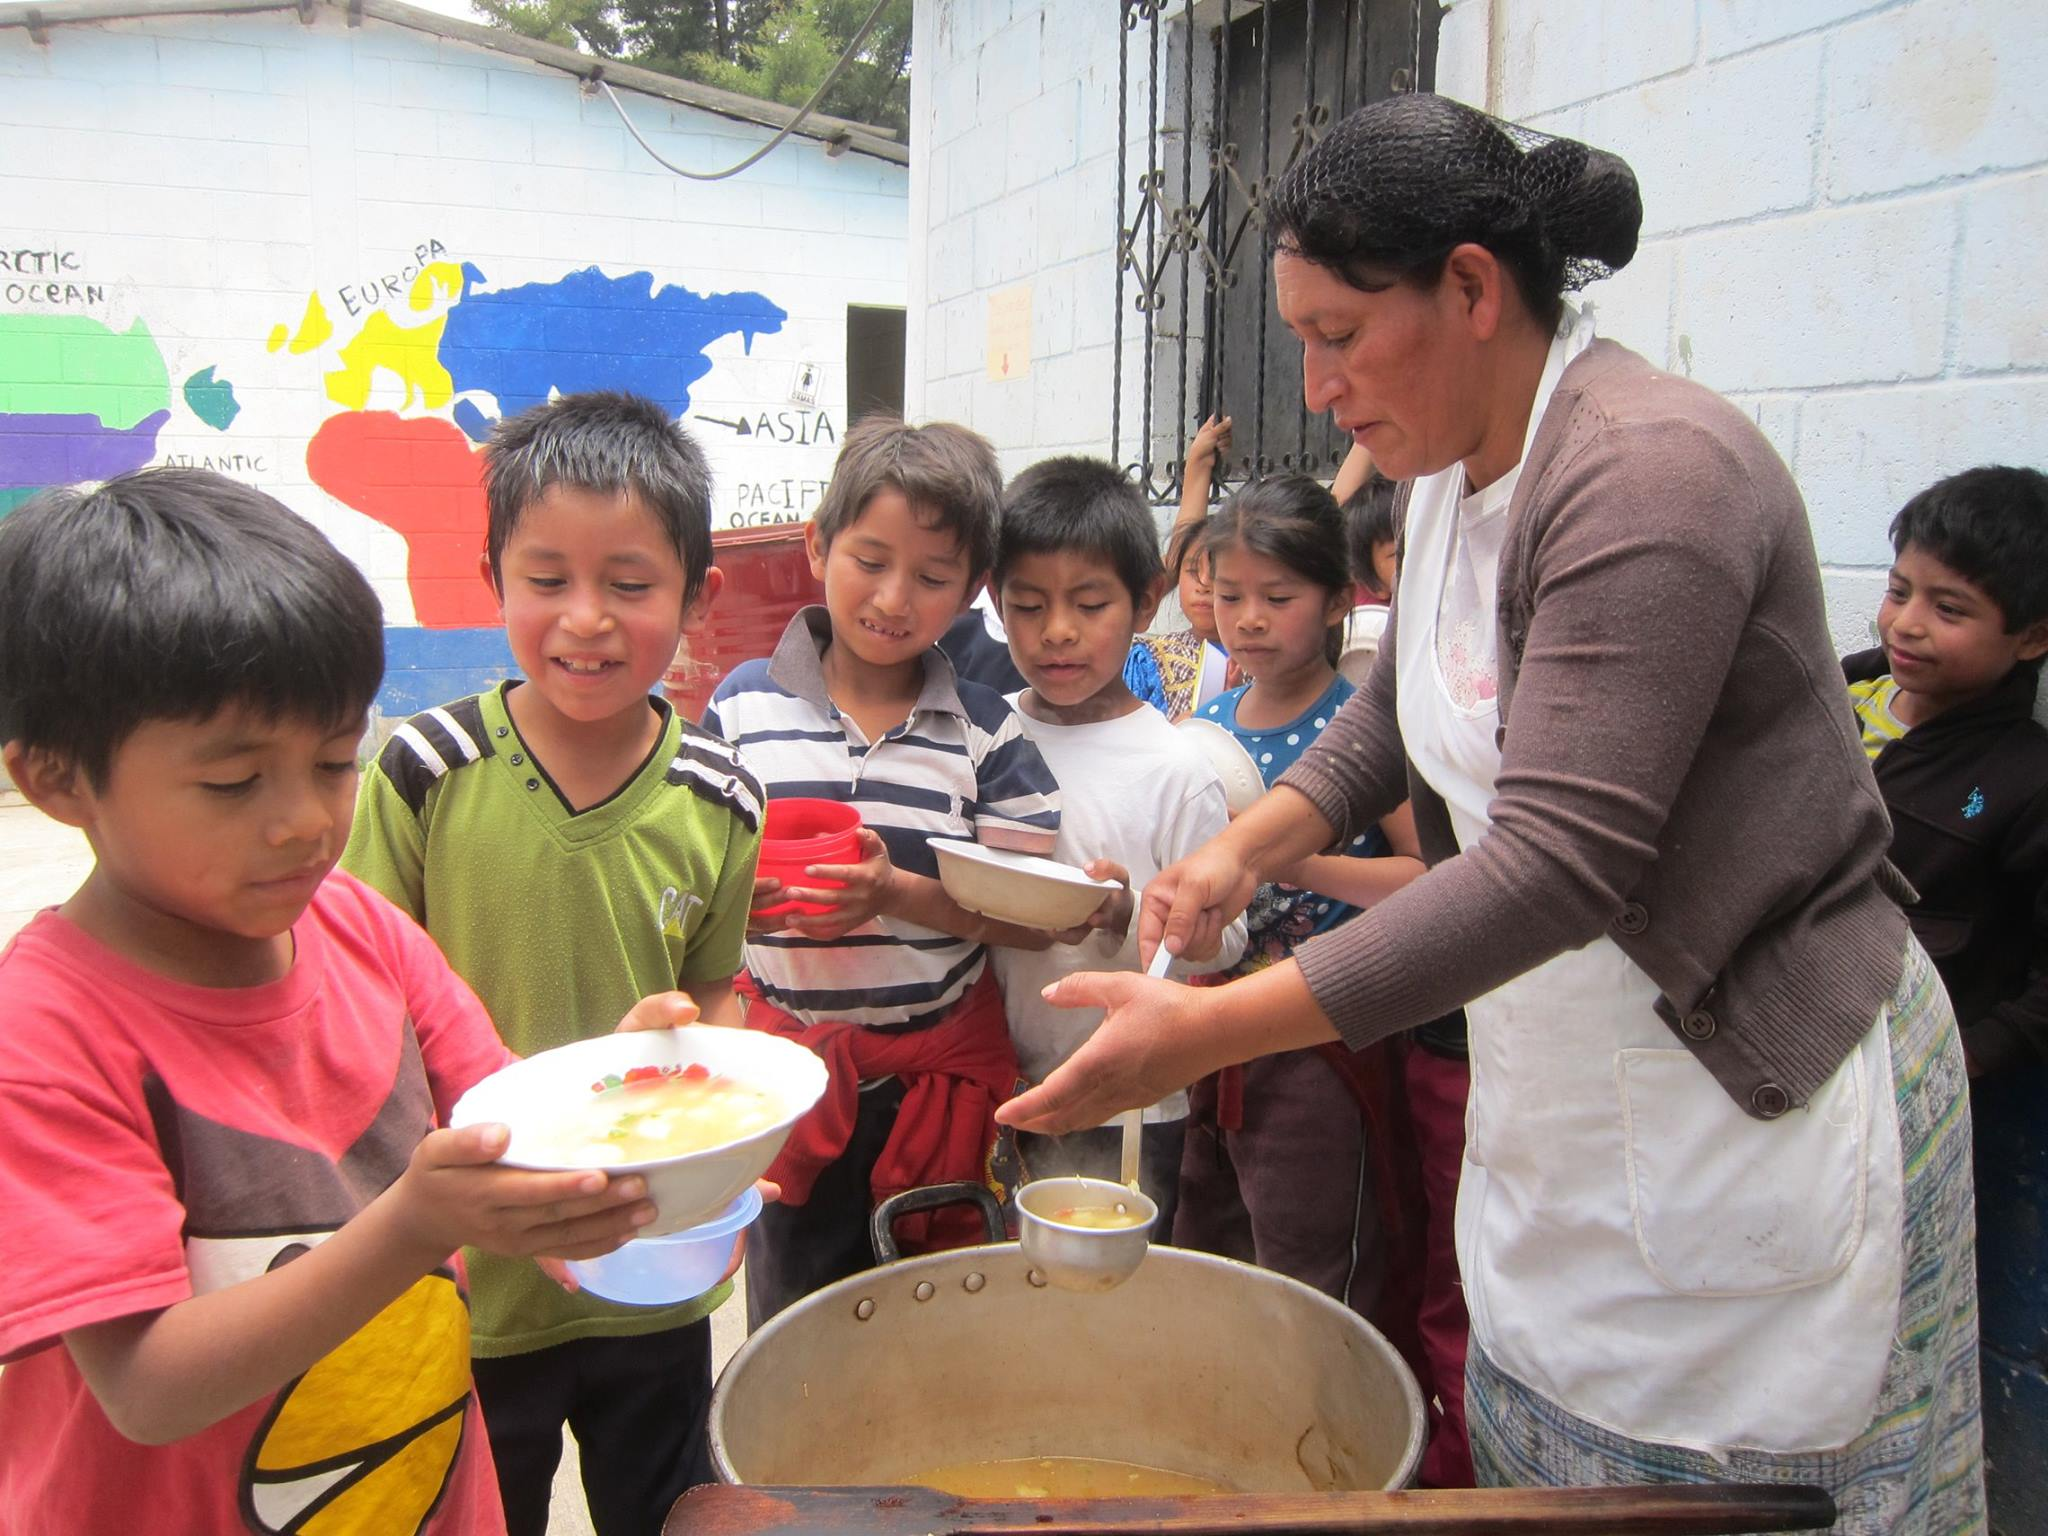 Children receive their daily snack, to which our Health and Nutrition Program contributes.